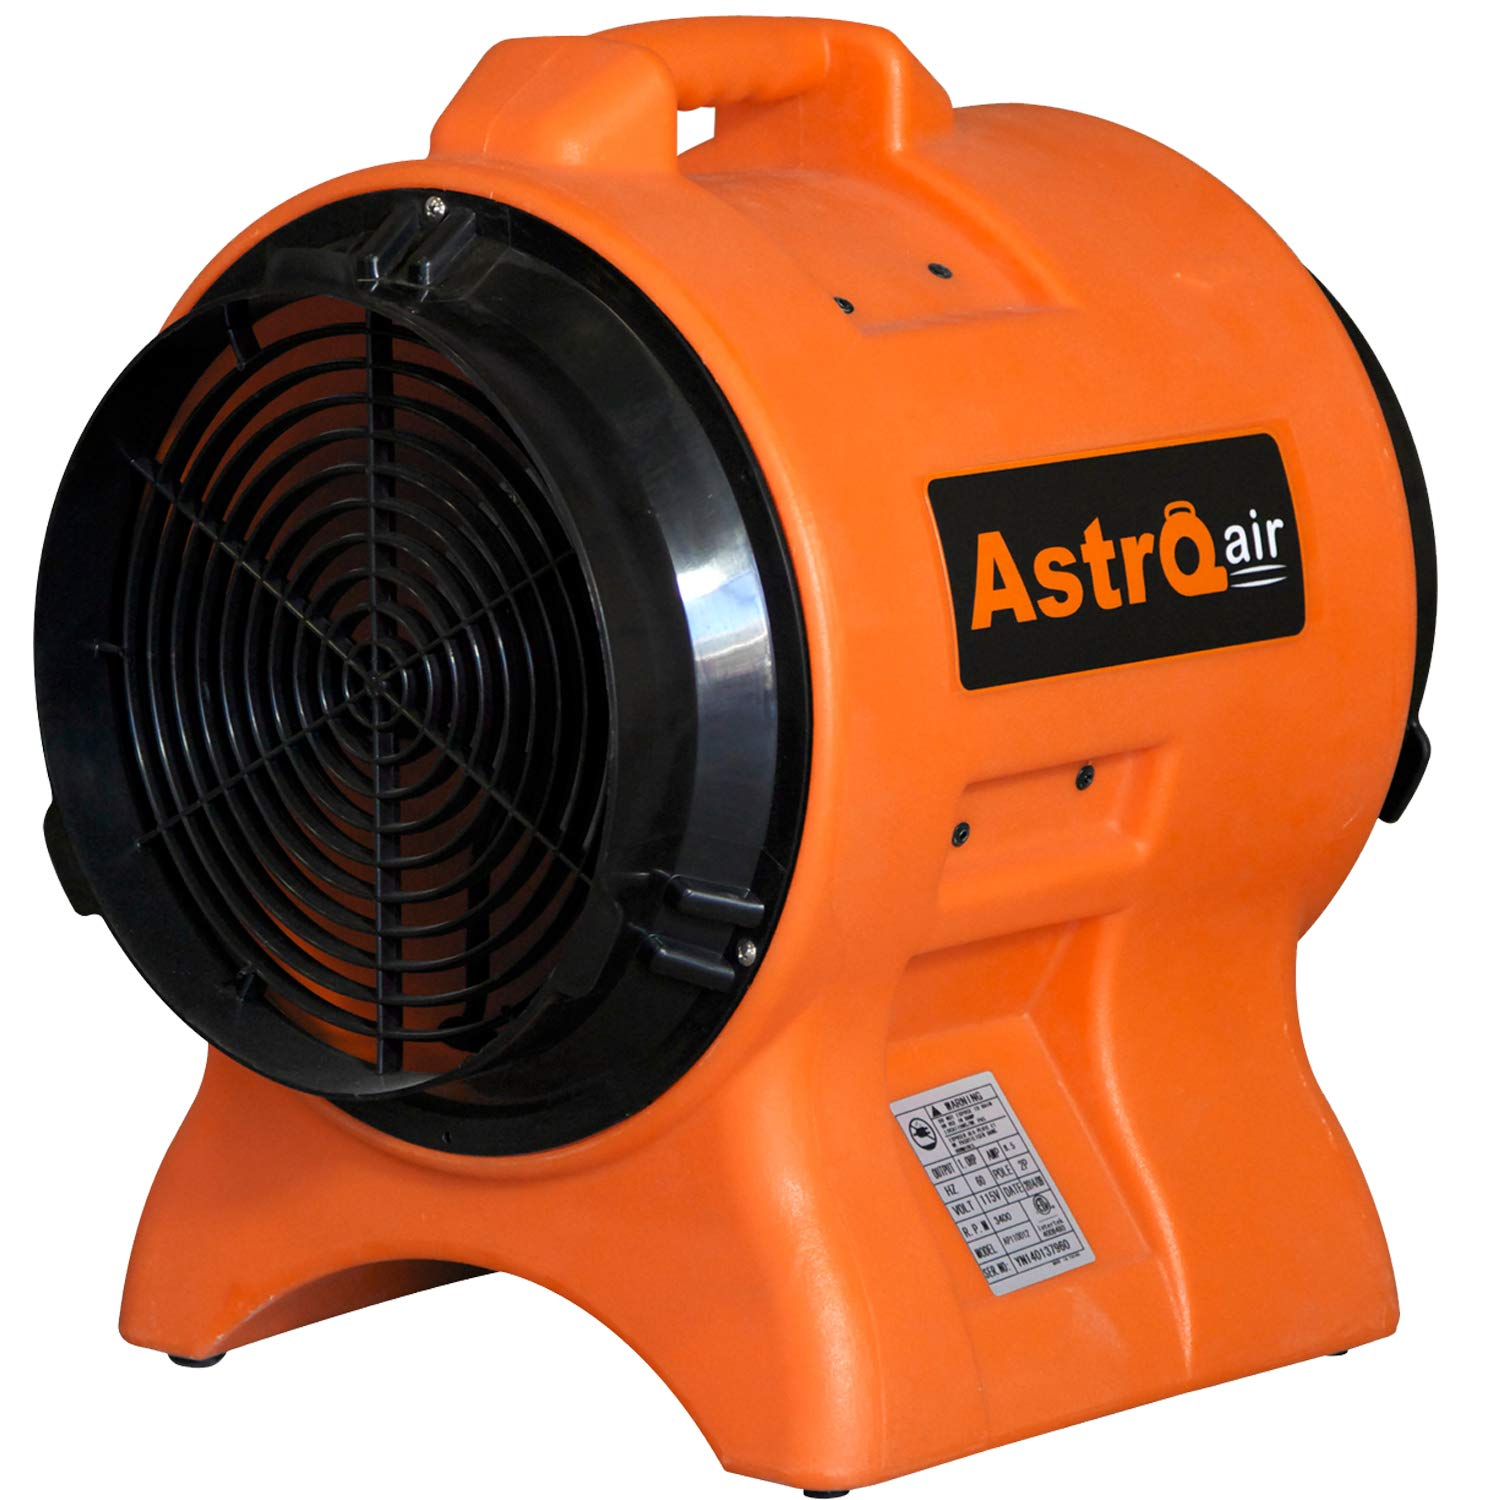 AstroDry 12' Axial Blower 1HP High Velocity Utility Air Mover Carpet Floor Dryer Fan Industrial Confined Space Ventilator -Orange,AT110